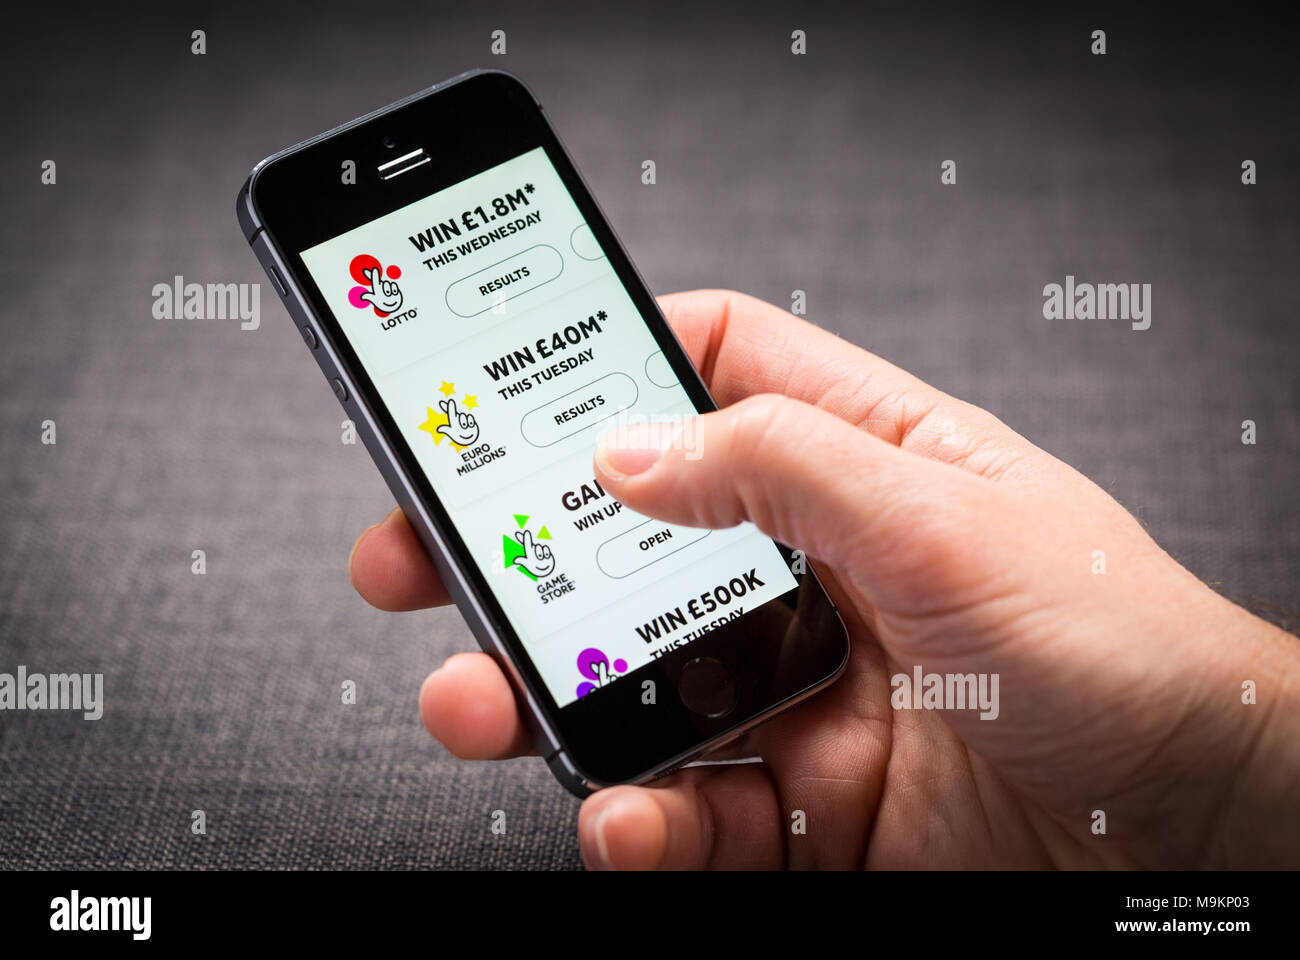 A man using The National Lottery app on an iPhone - Stock Image